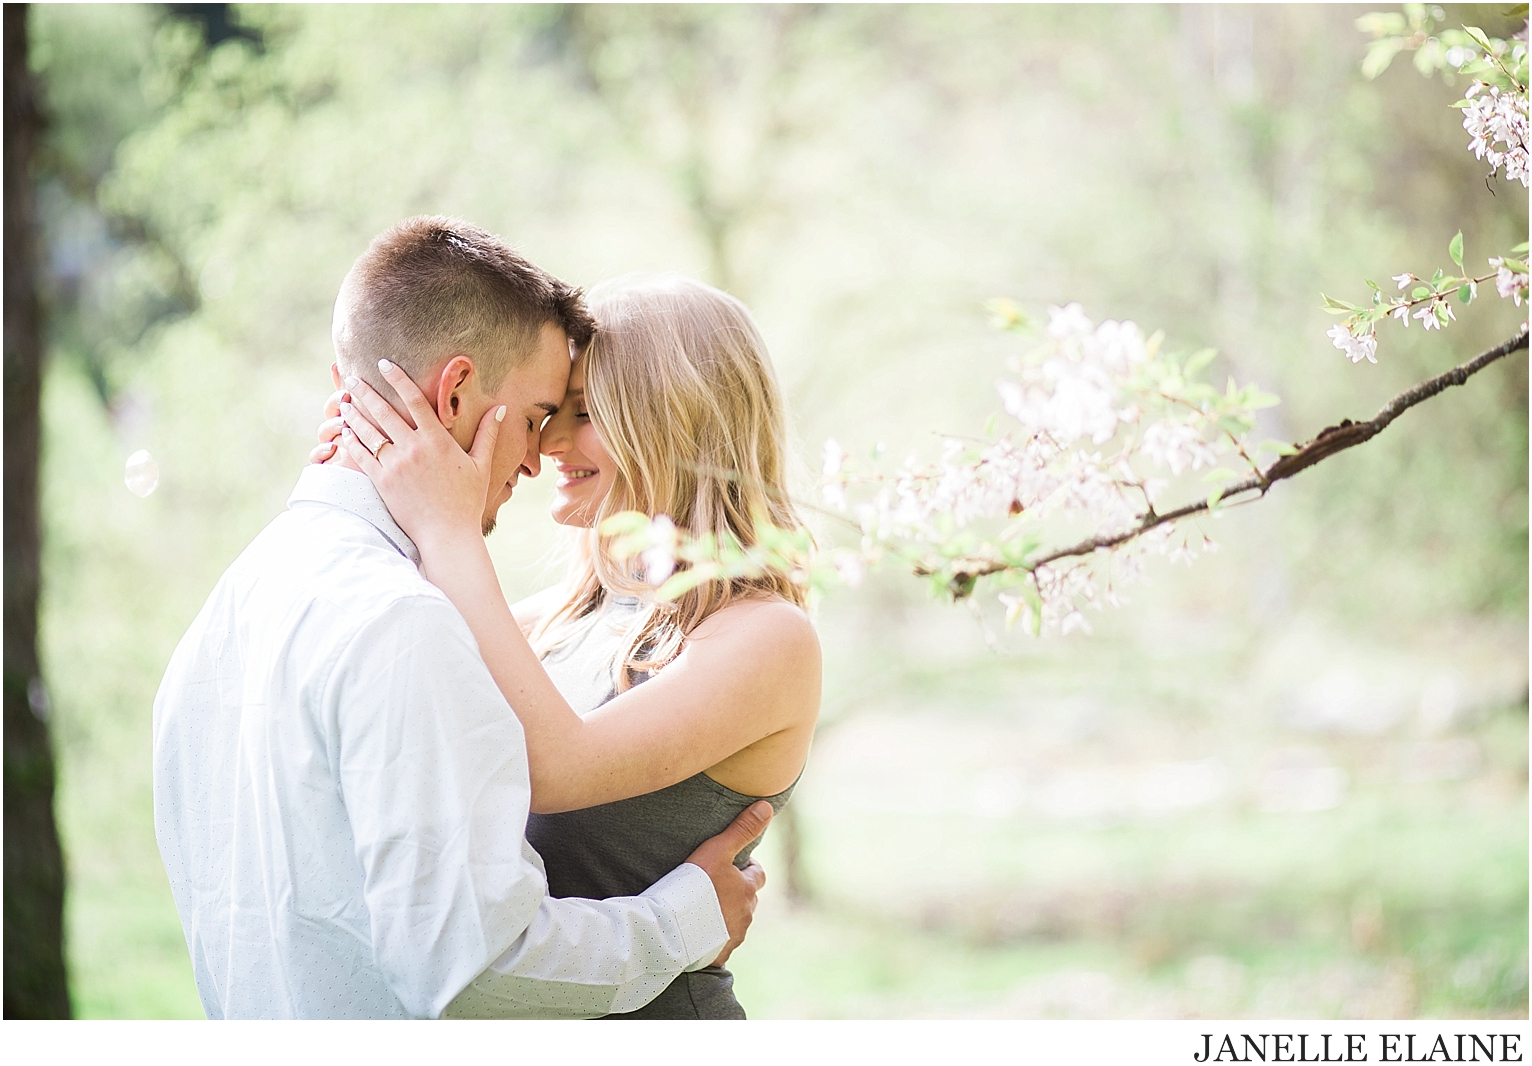 tricia and nate engagement photos-janelle elaine photography-76.jpg